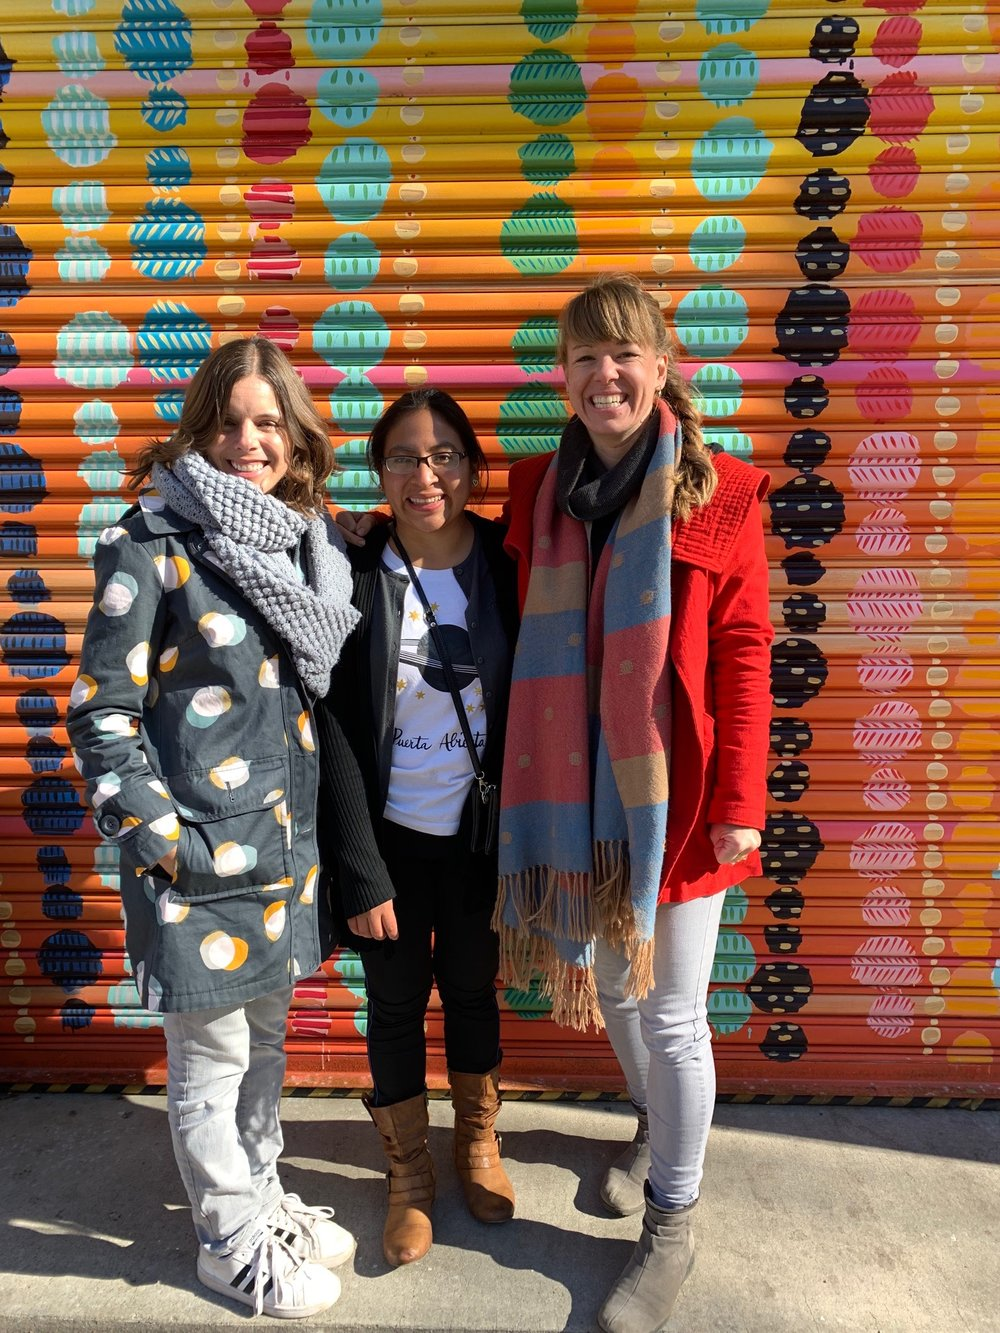 Amanda Flayer (Founder of La Puerta Abierta in Atitlán, Guatemala), Ana Mesia (Artisan and teacher at La Puerta Abierta in Atitlán, Guatemala), and Amanda Zehner (Founder and CEO of Living Threads Co.) exploring DC after their arrival.